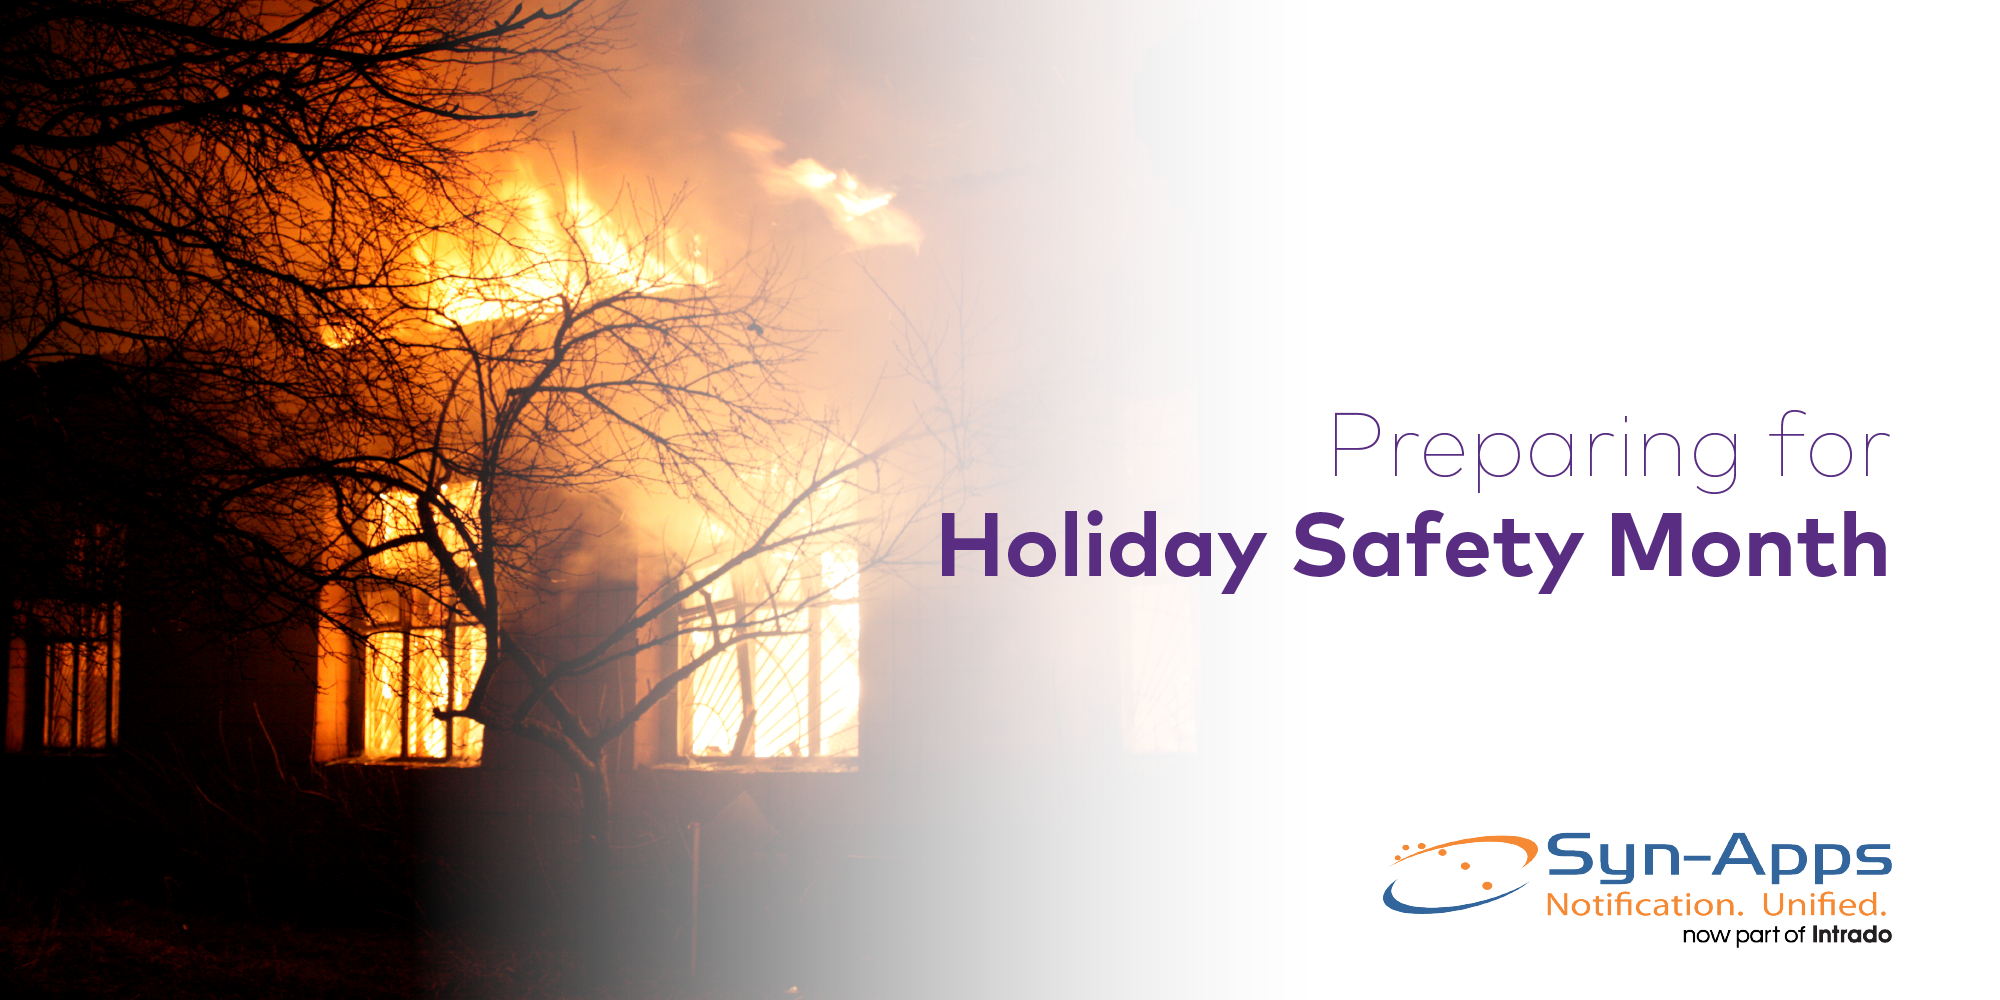 Preparing for Holiday Safety Month